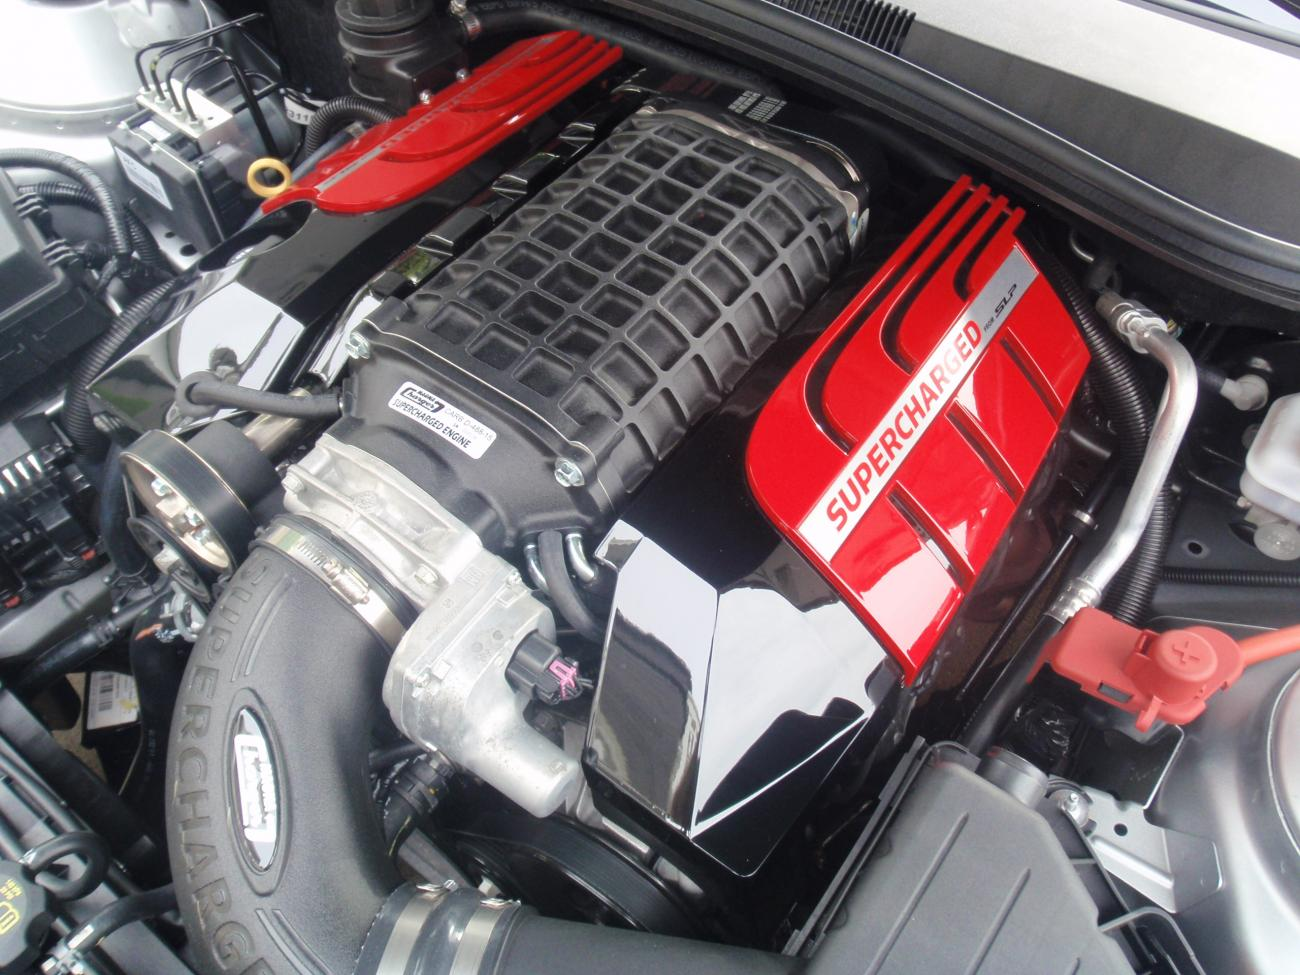 Magnuson Supercharger Installed Pics Camaro5 Chevy